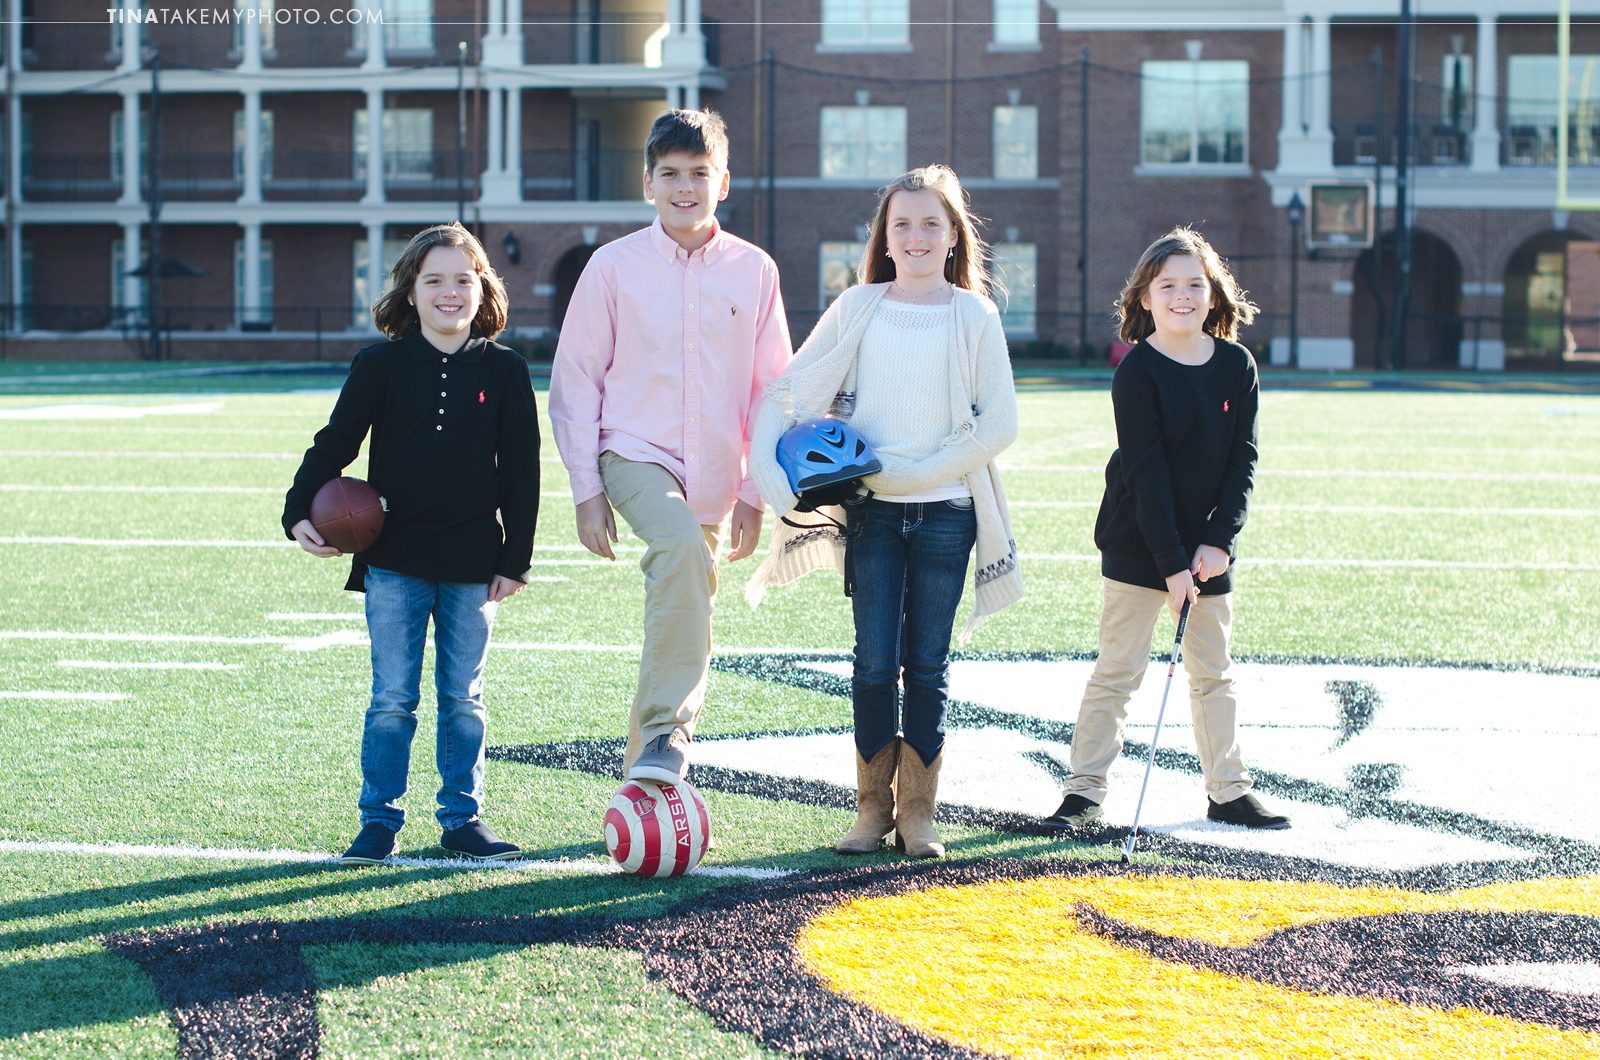 VA-virginia-family-photographer-kids-children-siblings-sunny-ashland-randolph-macon-field-sports-01